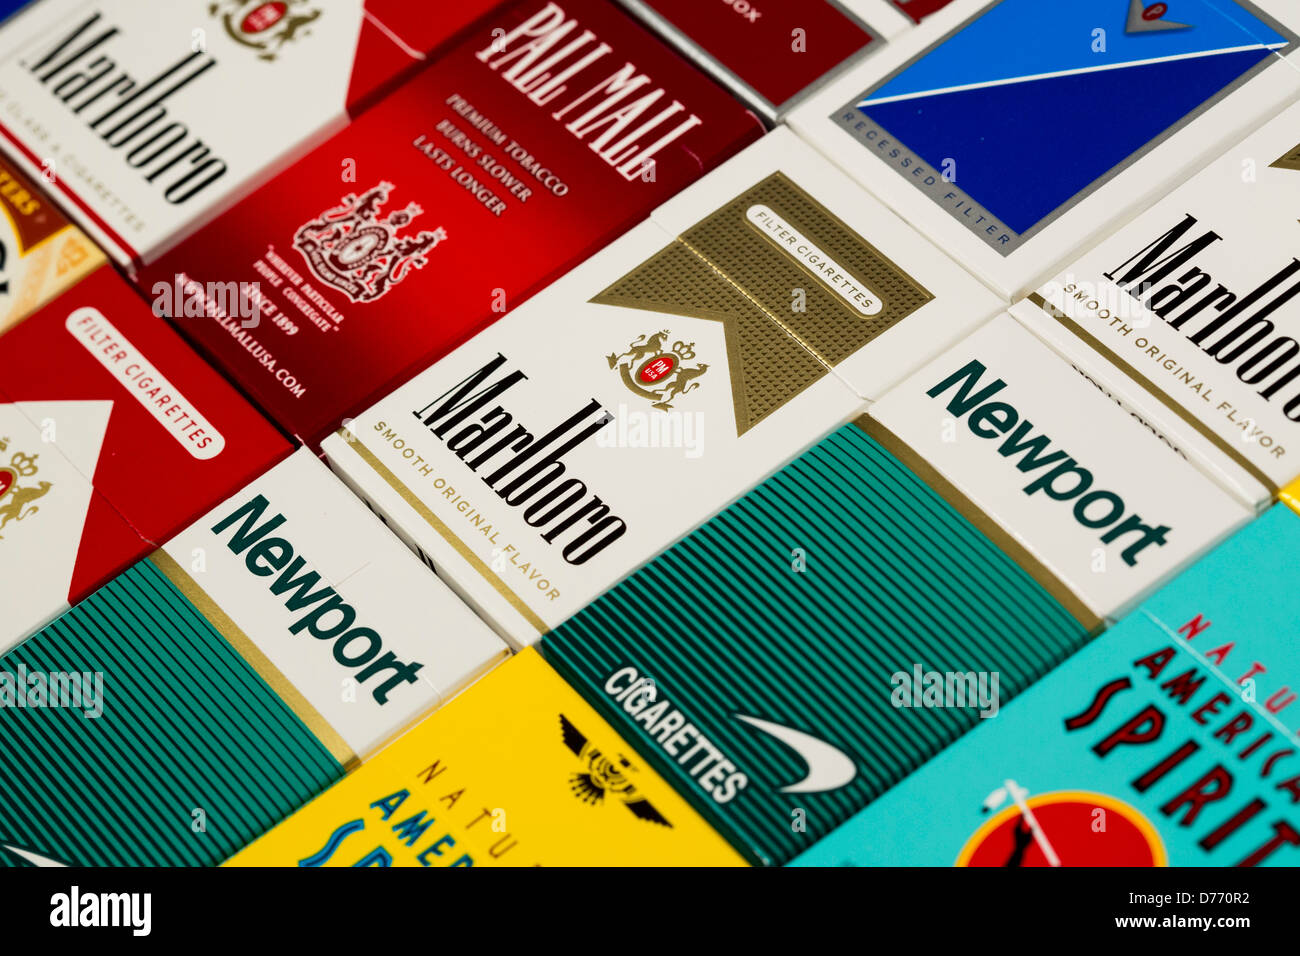 Pack Pall Mall Cigarettes Stock Photos & Pack Pall Mall Cigarettes